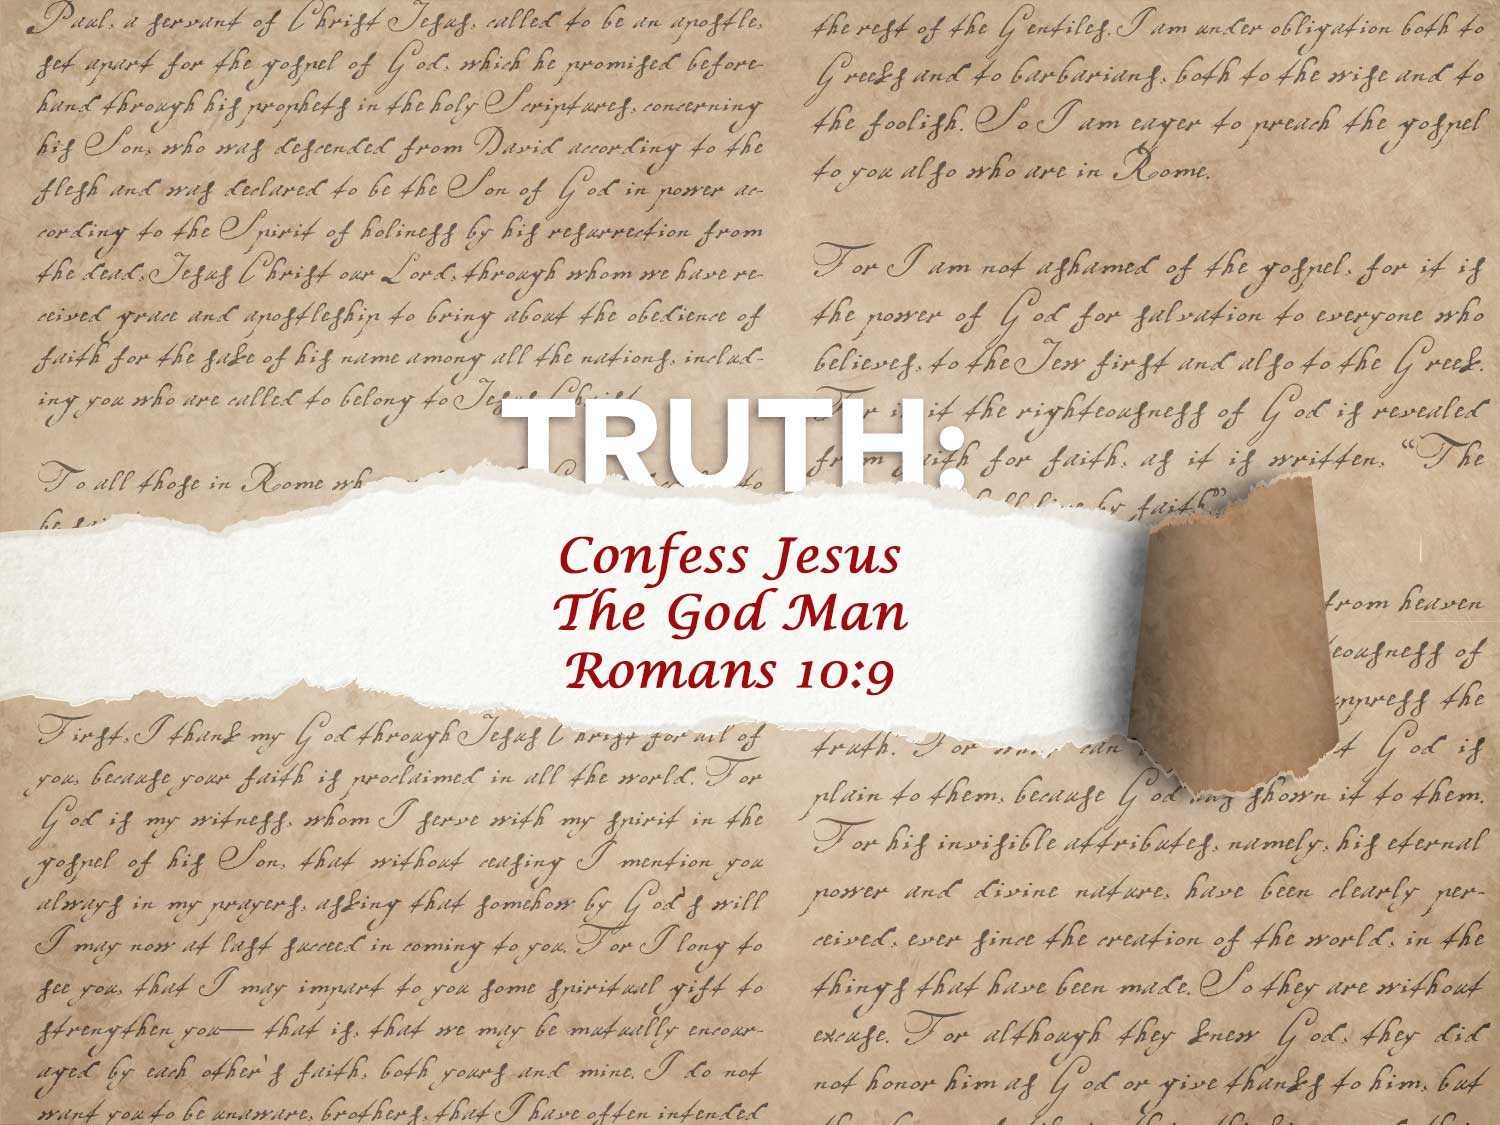 Romans 10:9 Confess Jesus The God Man